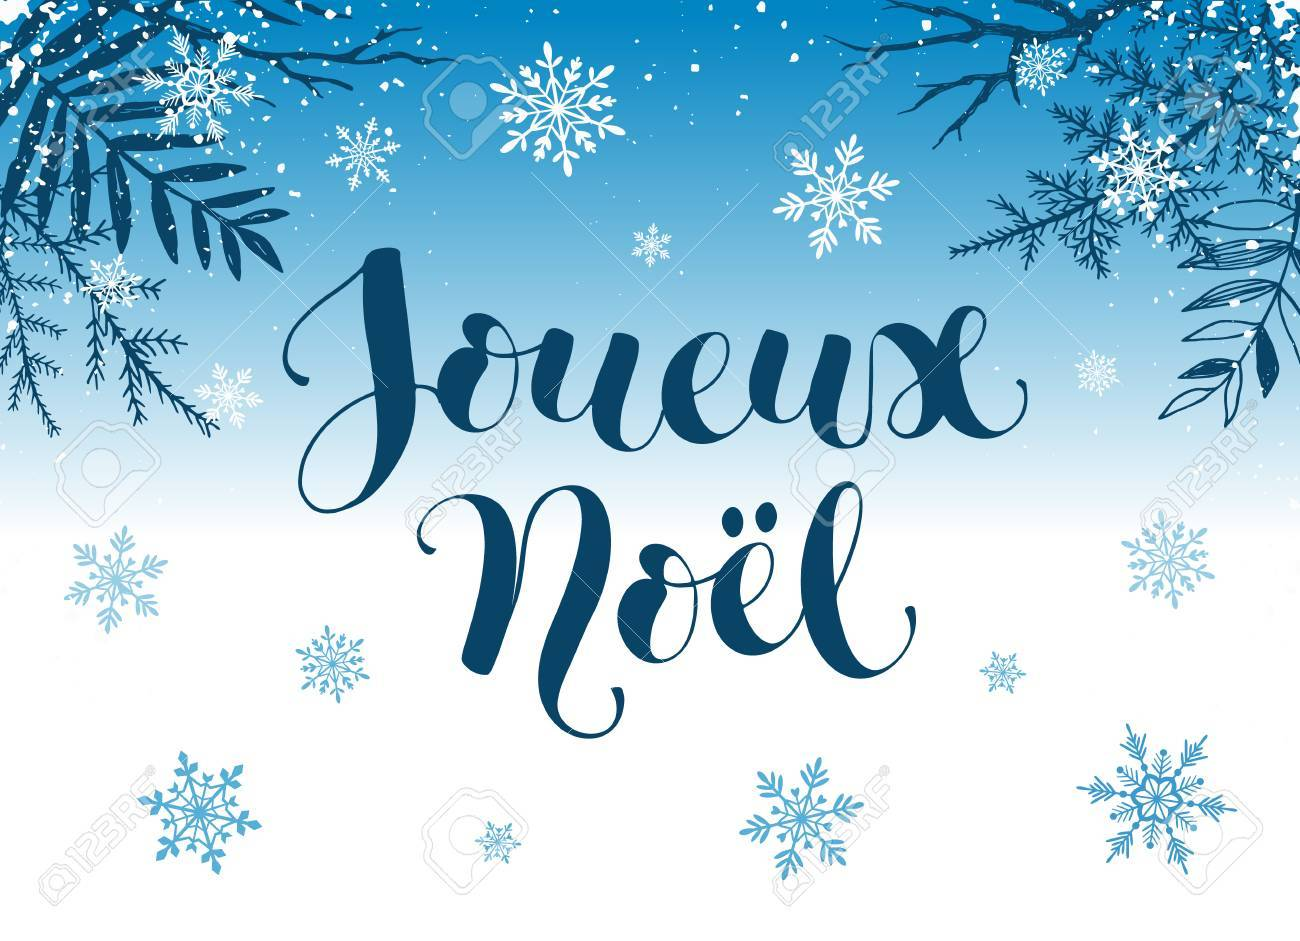 Joueux noel greeting card template modern holidays lettering joueux noel greeting card template modern holidays lettering with snowflakes and branches on blue background kristyandbryce Image collections